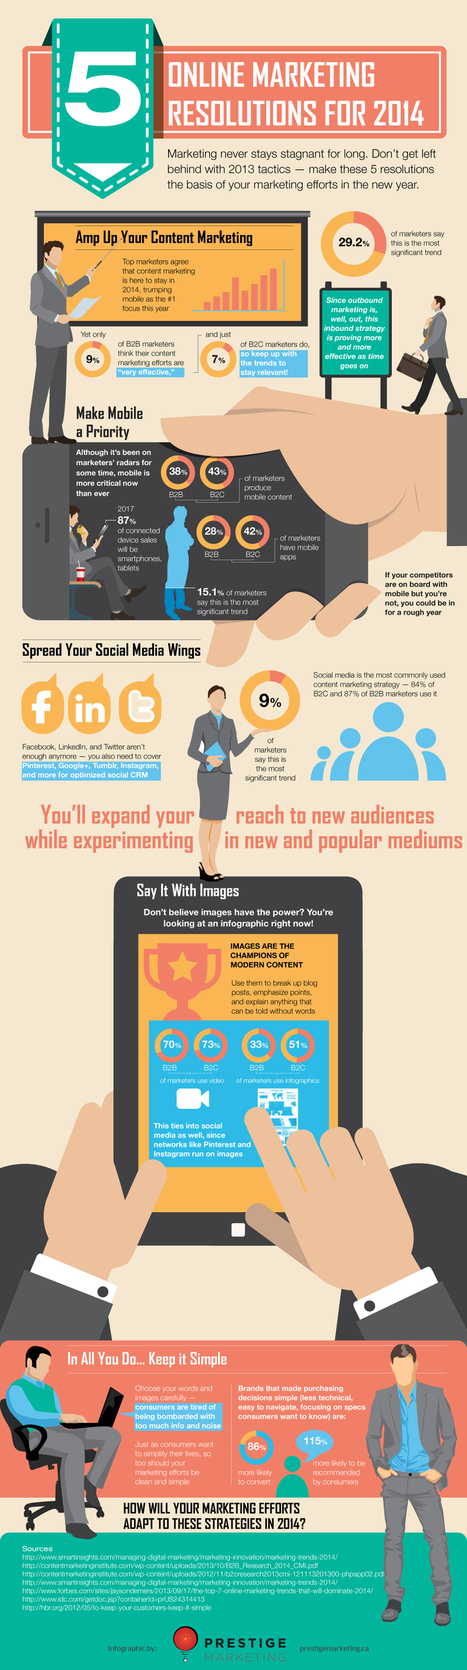 Infographic: 5 Online Marketing Resolutions For 2014 - Marketing Technology Blog | Mobile Marketing by Cytech | Scoop.it